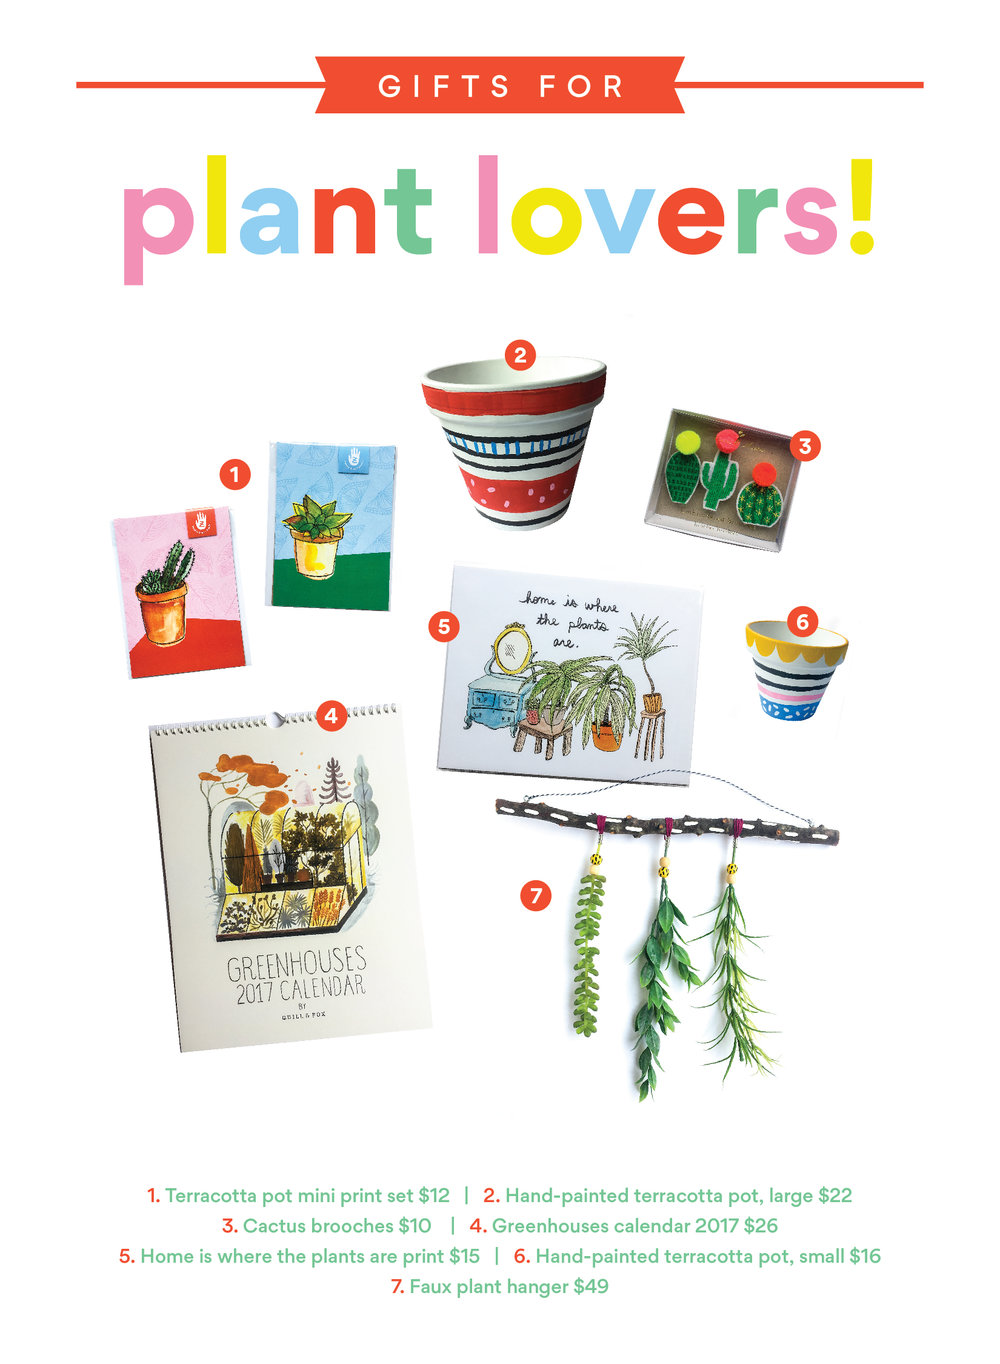 handzy covington cincinnati gift shop plant lovers 2016 holidays shopping